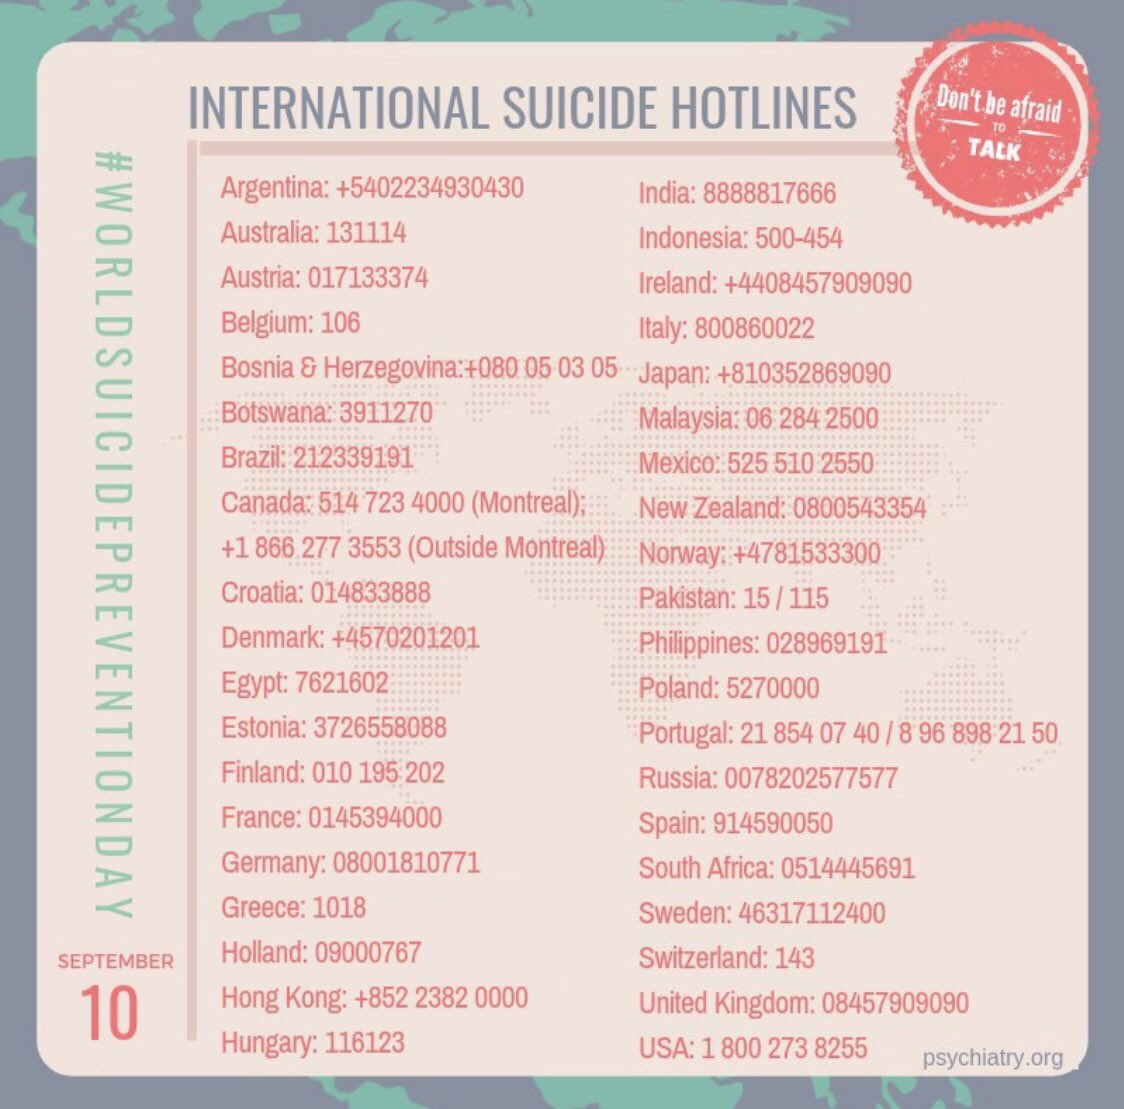 #WorldSuicidePreventionDay https://t.co/9ewofFO7gA